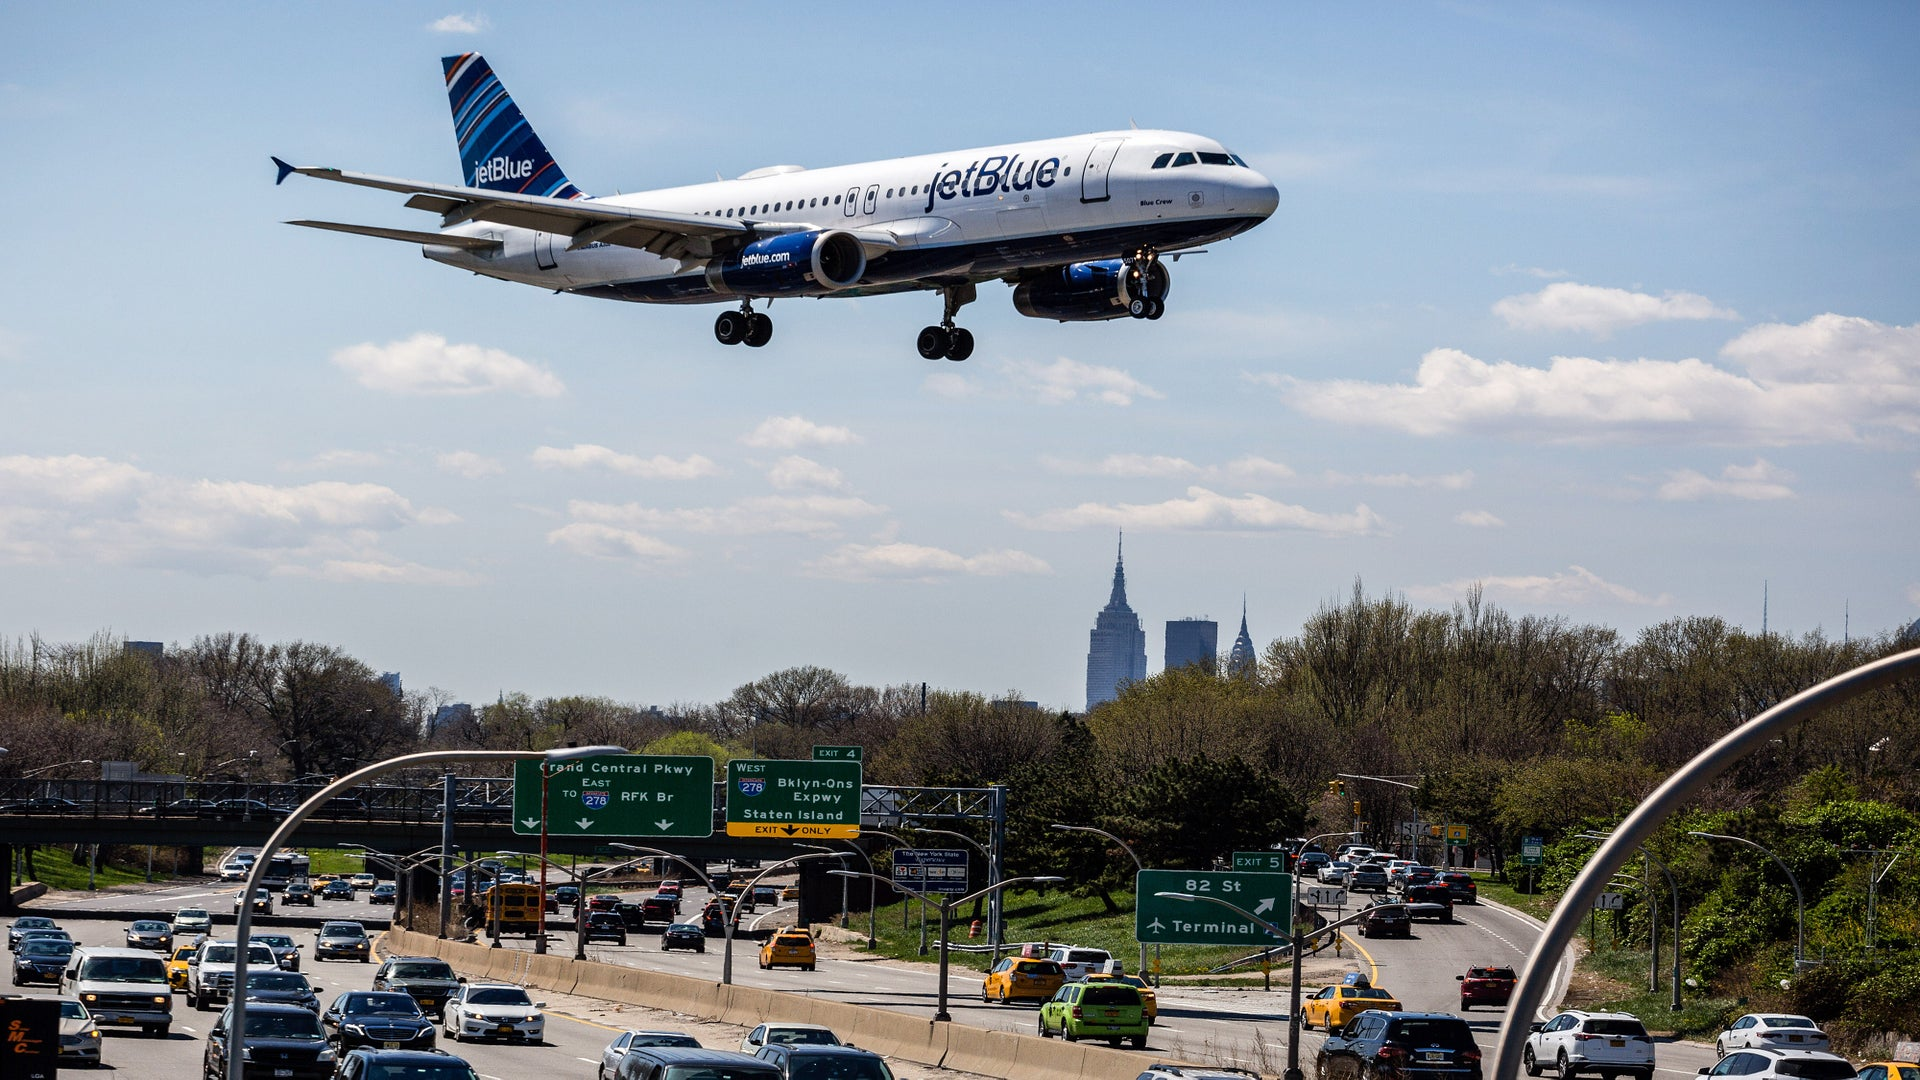 New Jersey Family Kicked Off JetBlue Flight to Las Vegas Over Birthday Cake